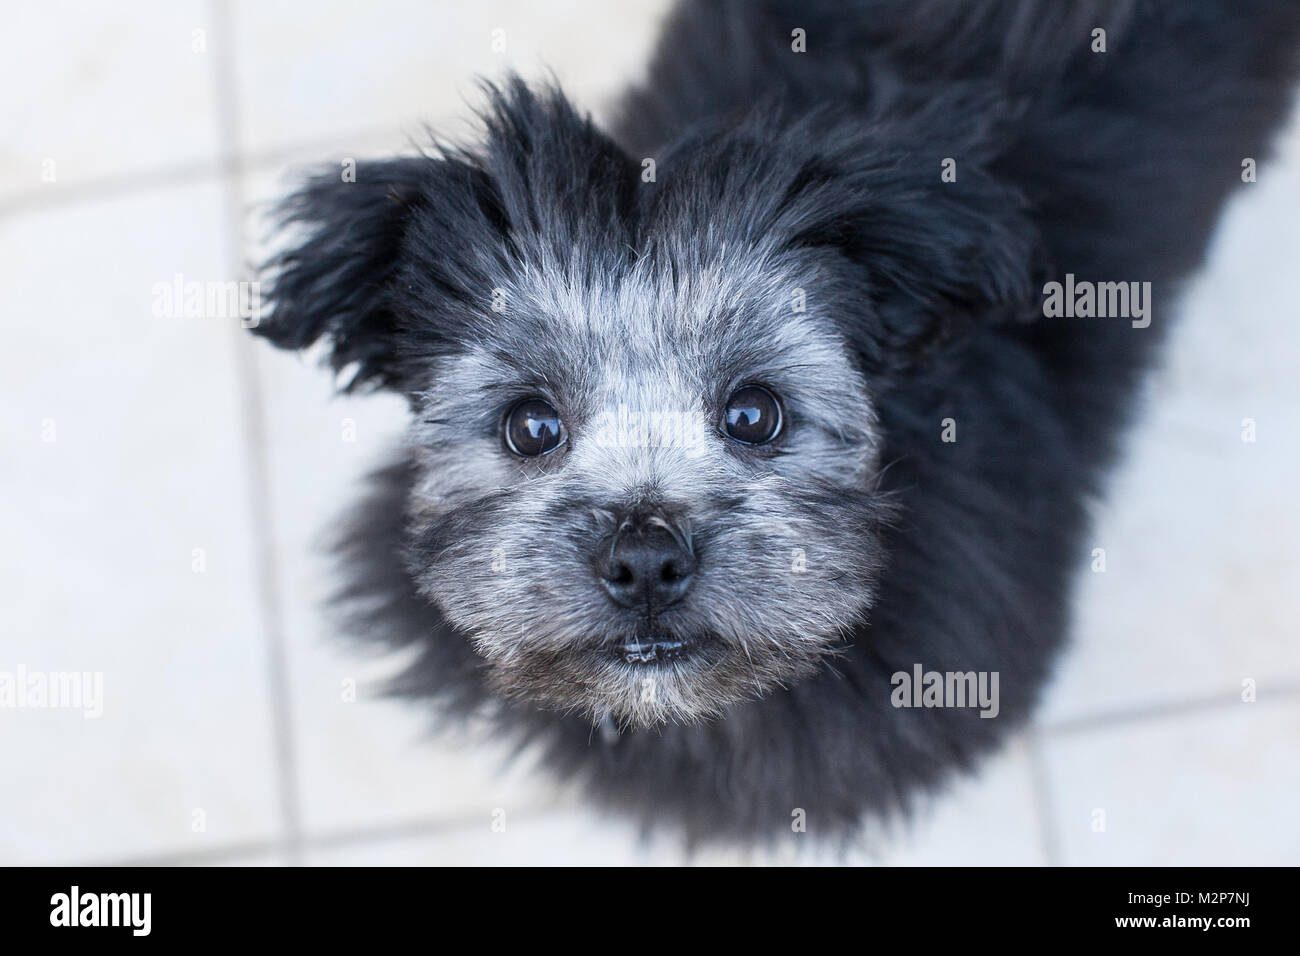 A Maltese Crossed With Shih Tzu Crossed With Pomeranian Puppy Stock